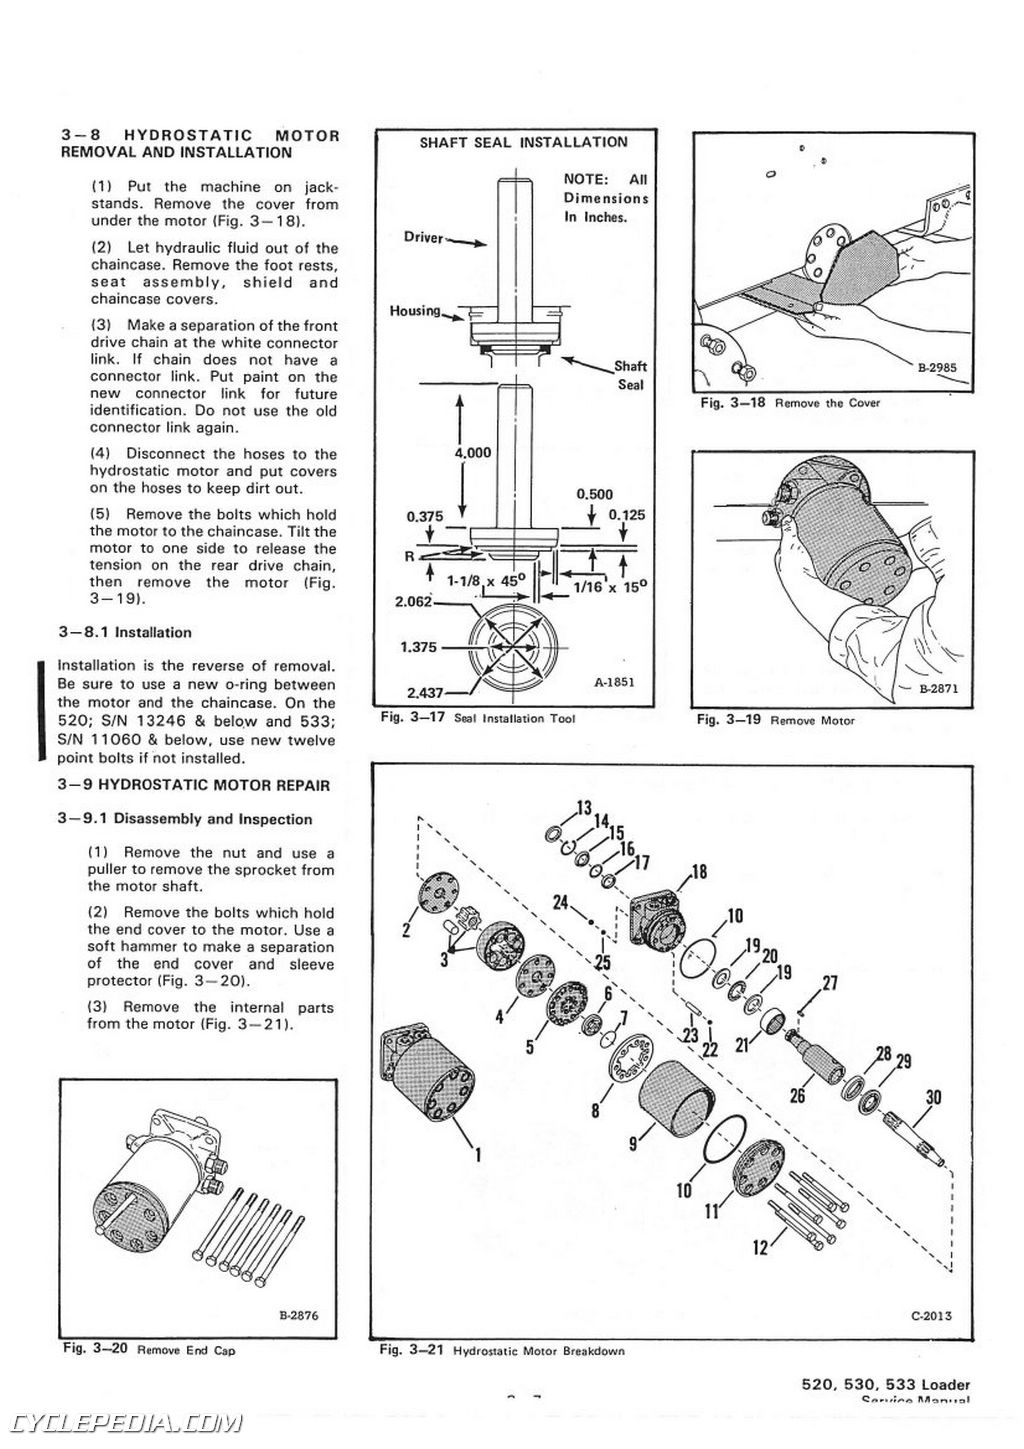 bobcat 843 parts diagram sap business one architecture 520 530 533 skid steer service manual